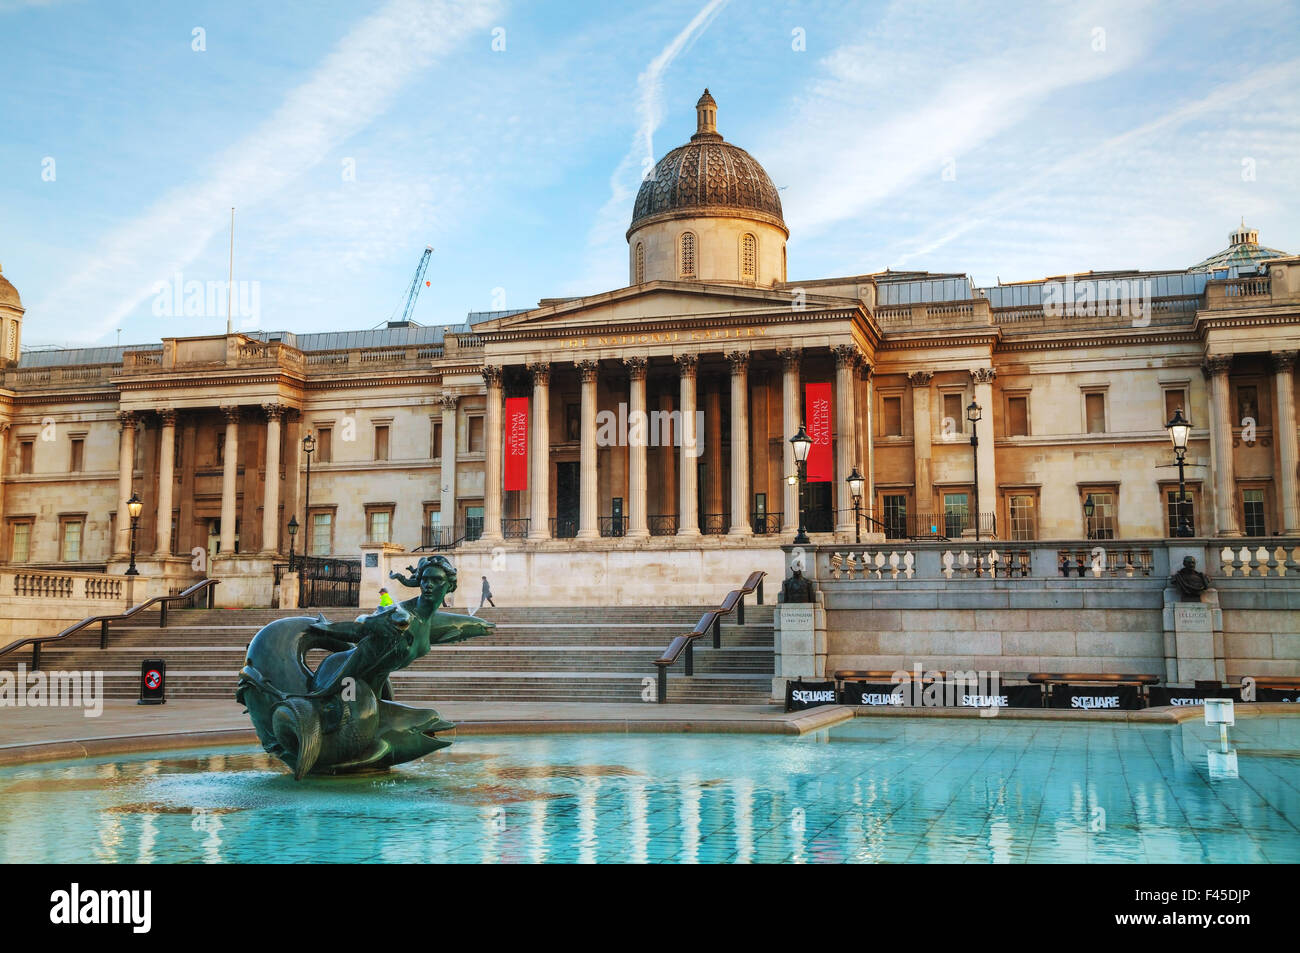 National Gallery building in London - Stock Image